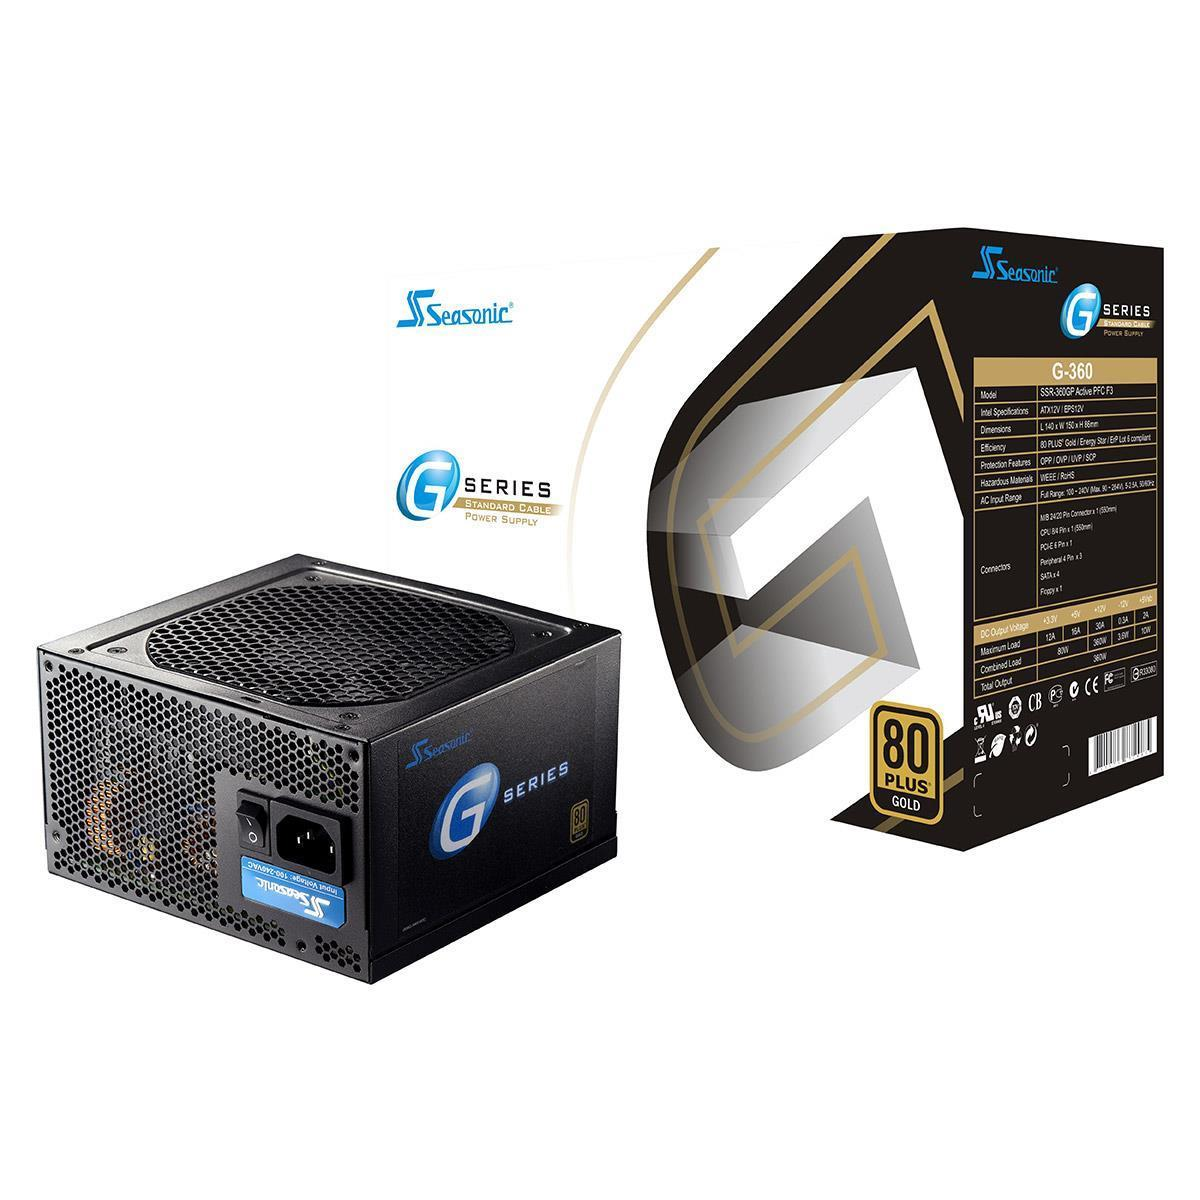 Seasonic G360 360W PSU